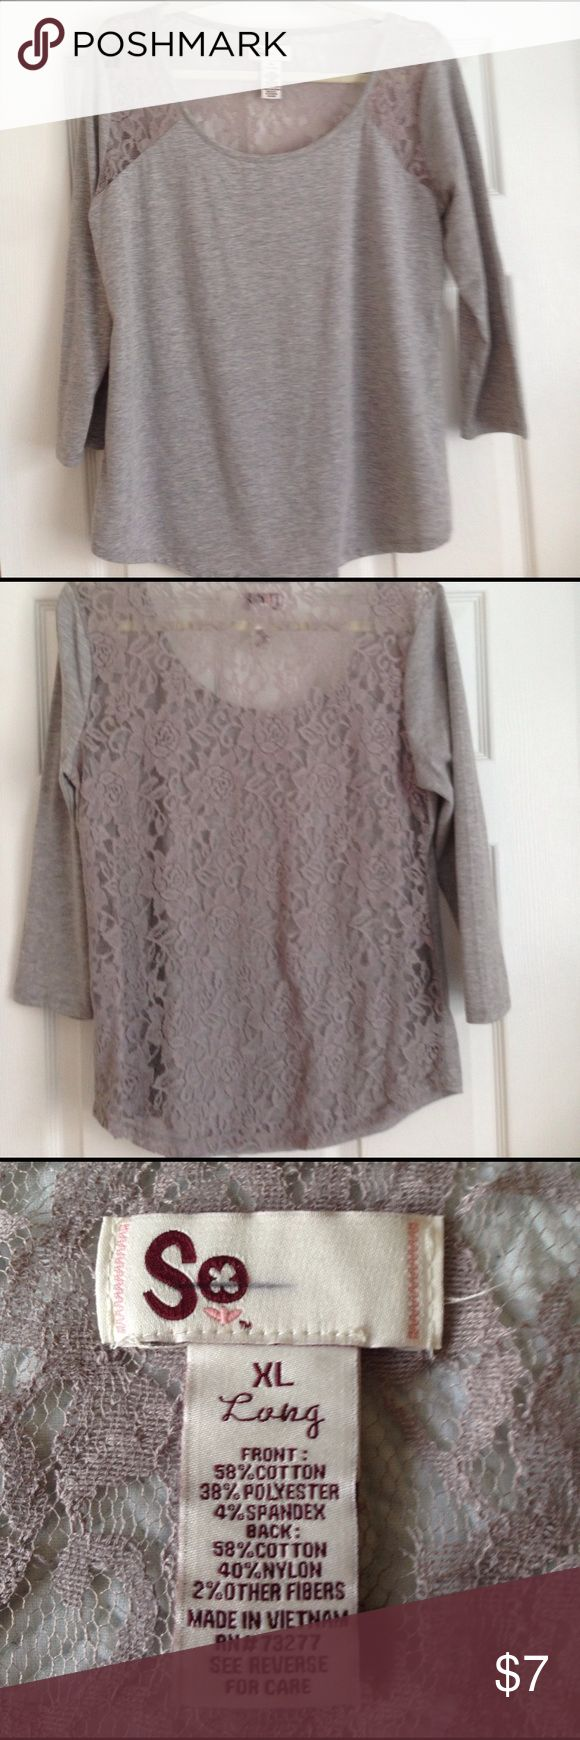 Lace Panel T-Shirt Soft grey long sleeve top with round neck and lace back and shoulder panels Tops Tees - Long Sleeve